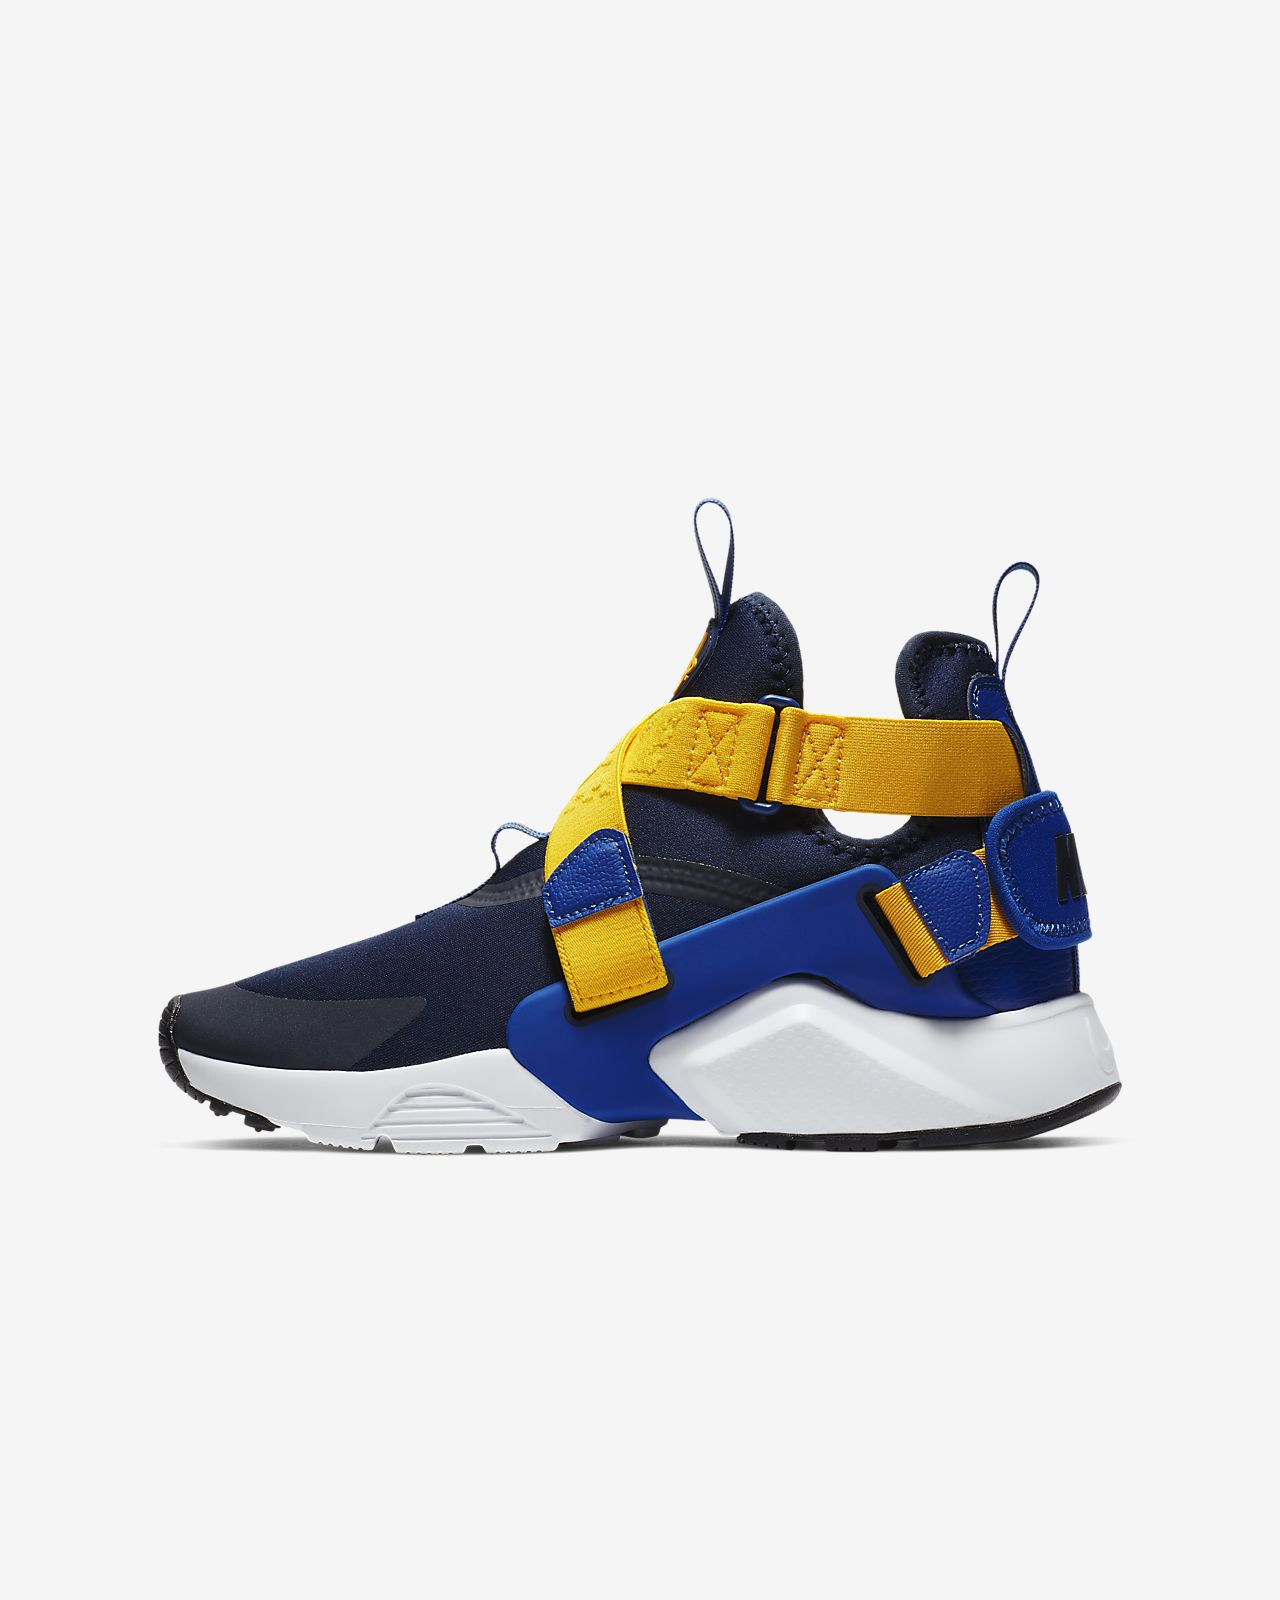 timeless design b9ccf 4682d ... Nike Huarache City Big Kids  Shoe